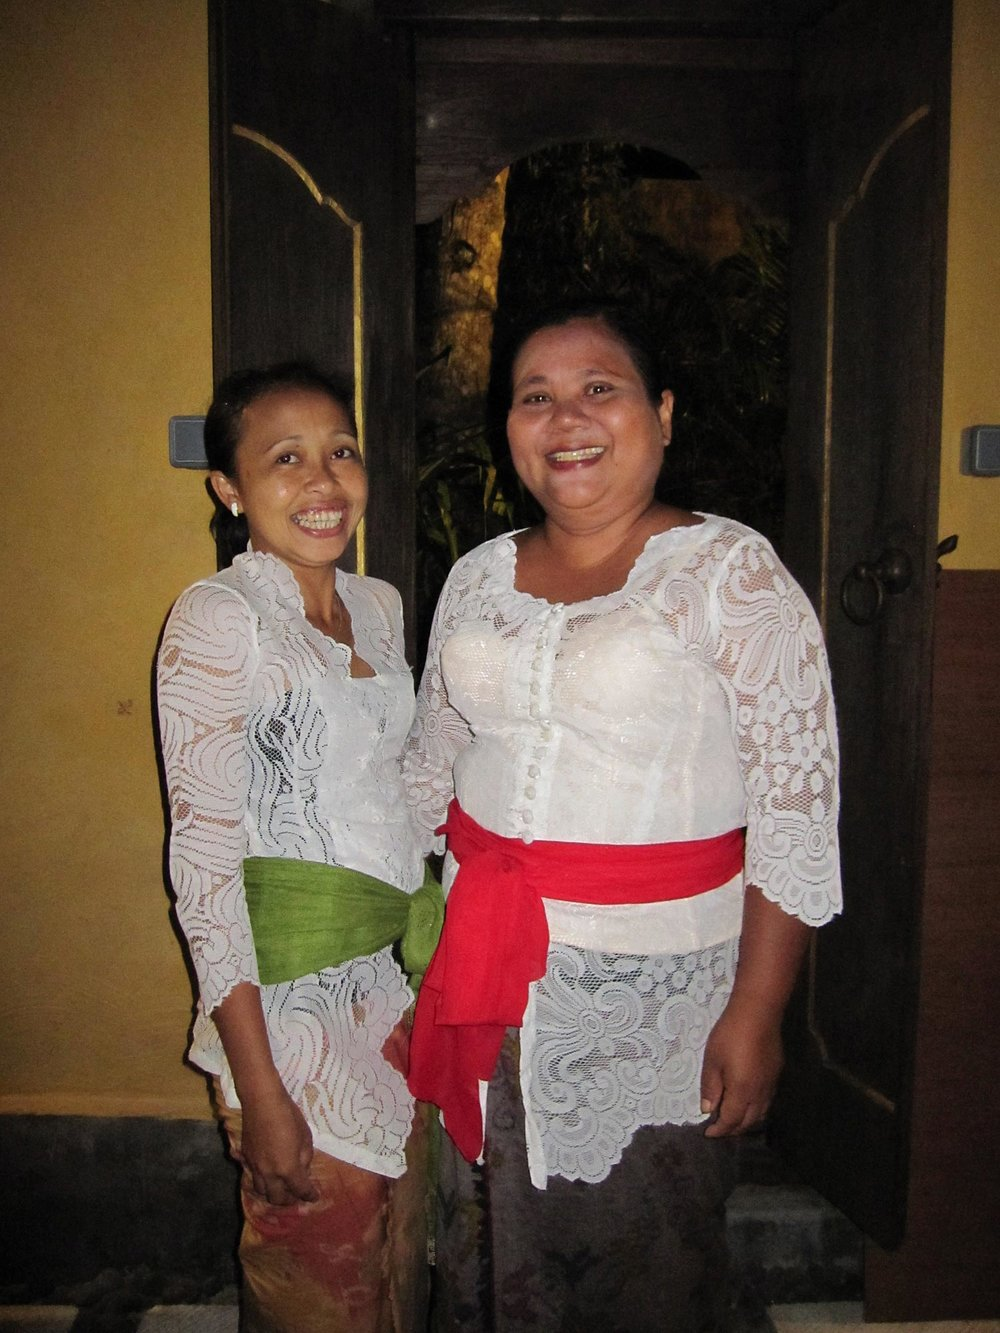 Dayu Made (right) and her caring team at Jendela di Bali